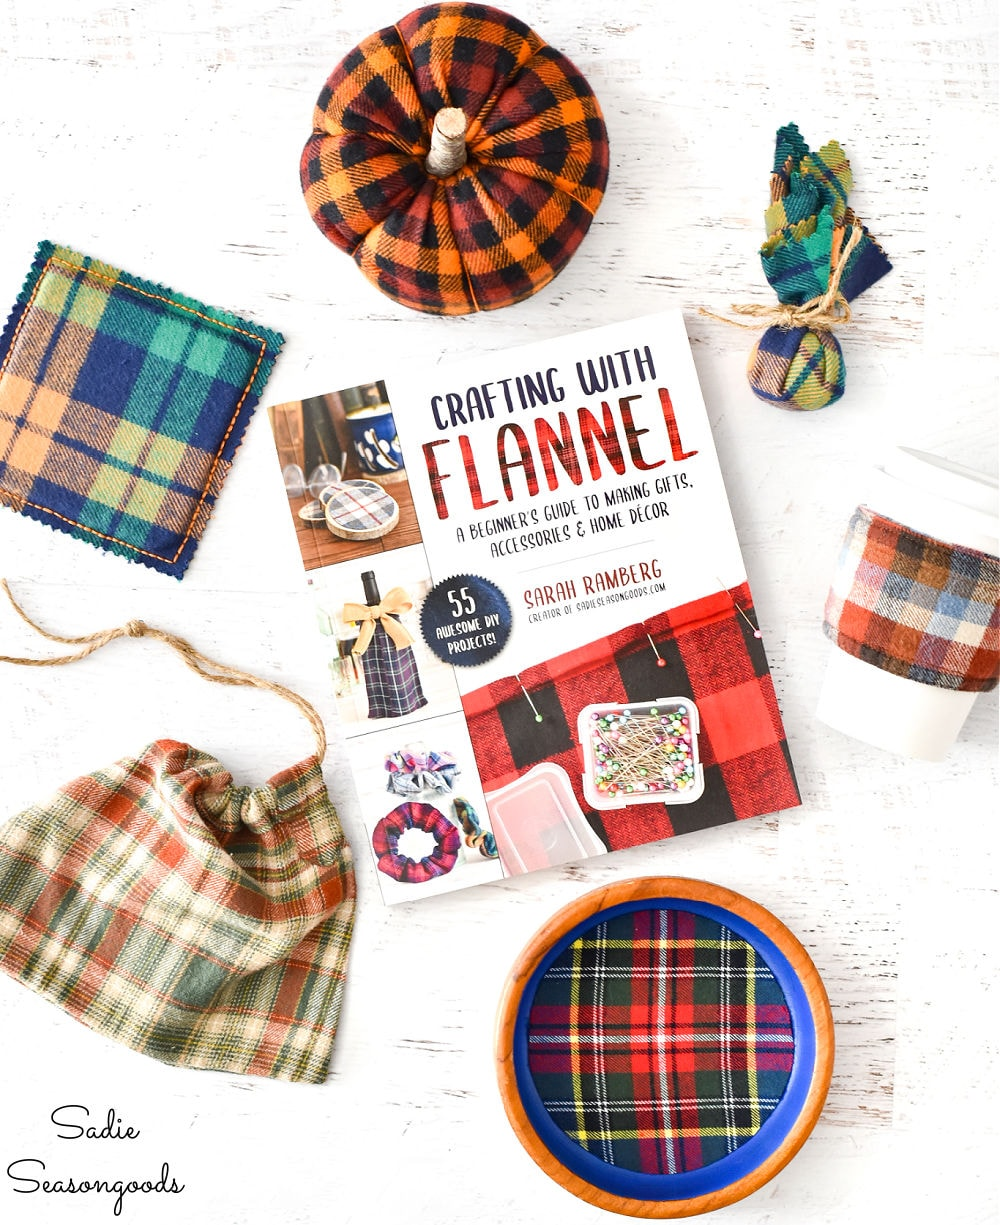 Craft ideas for flannel shirts